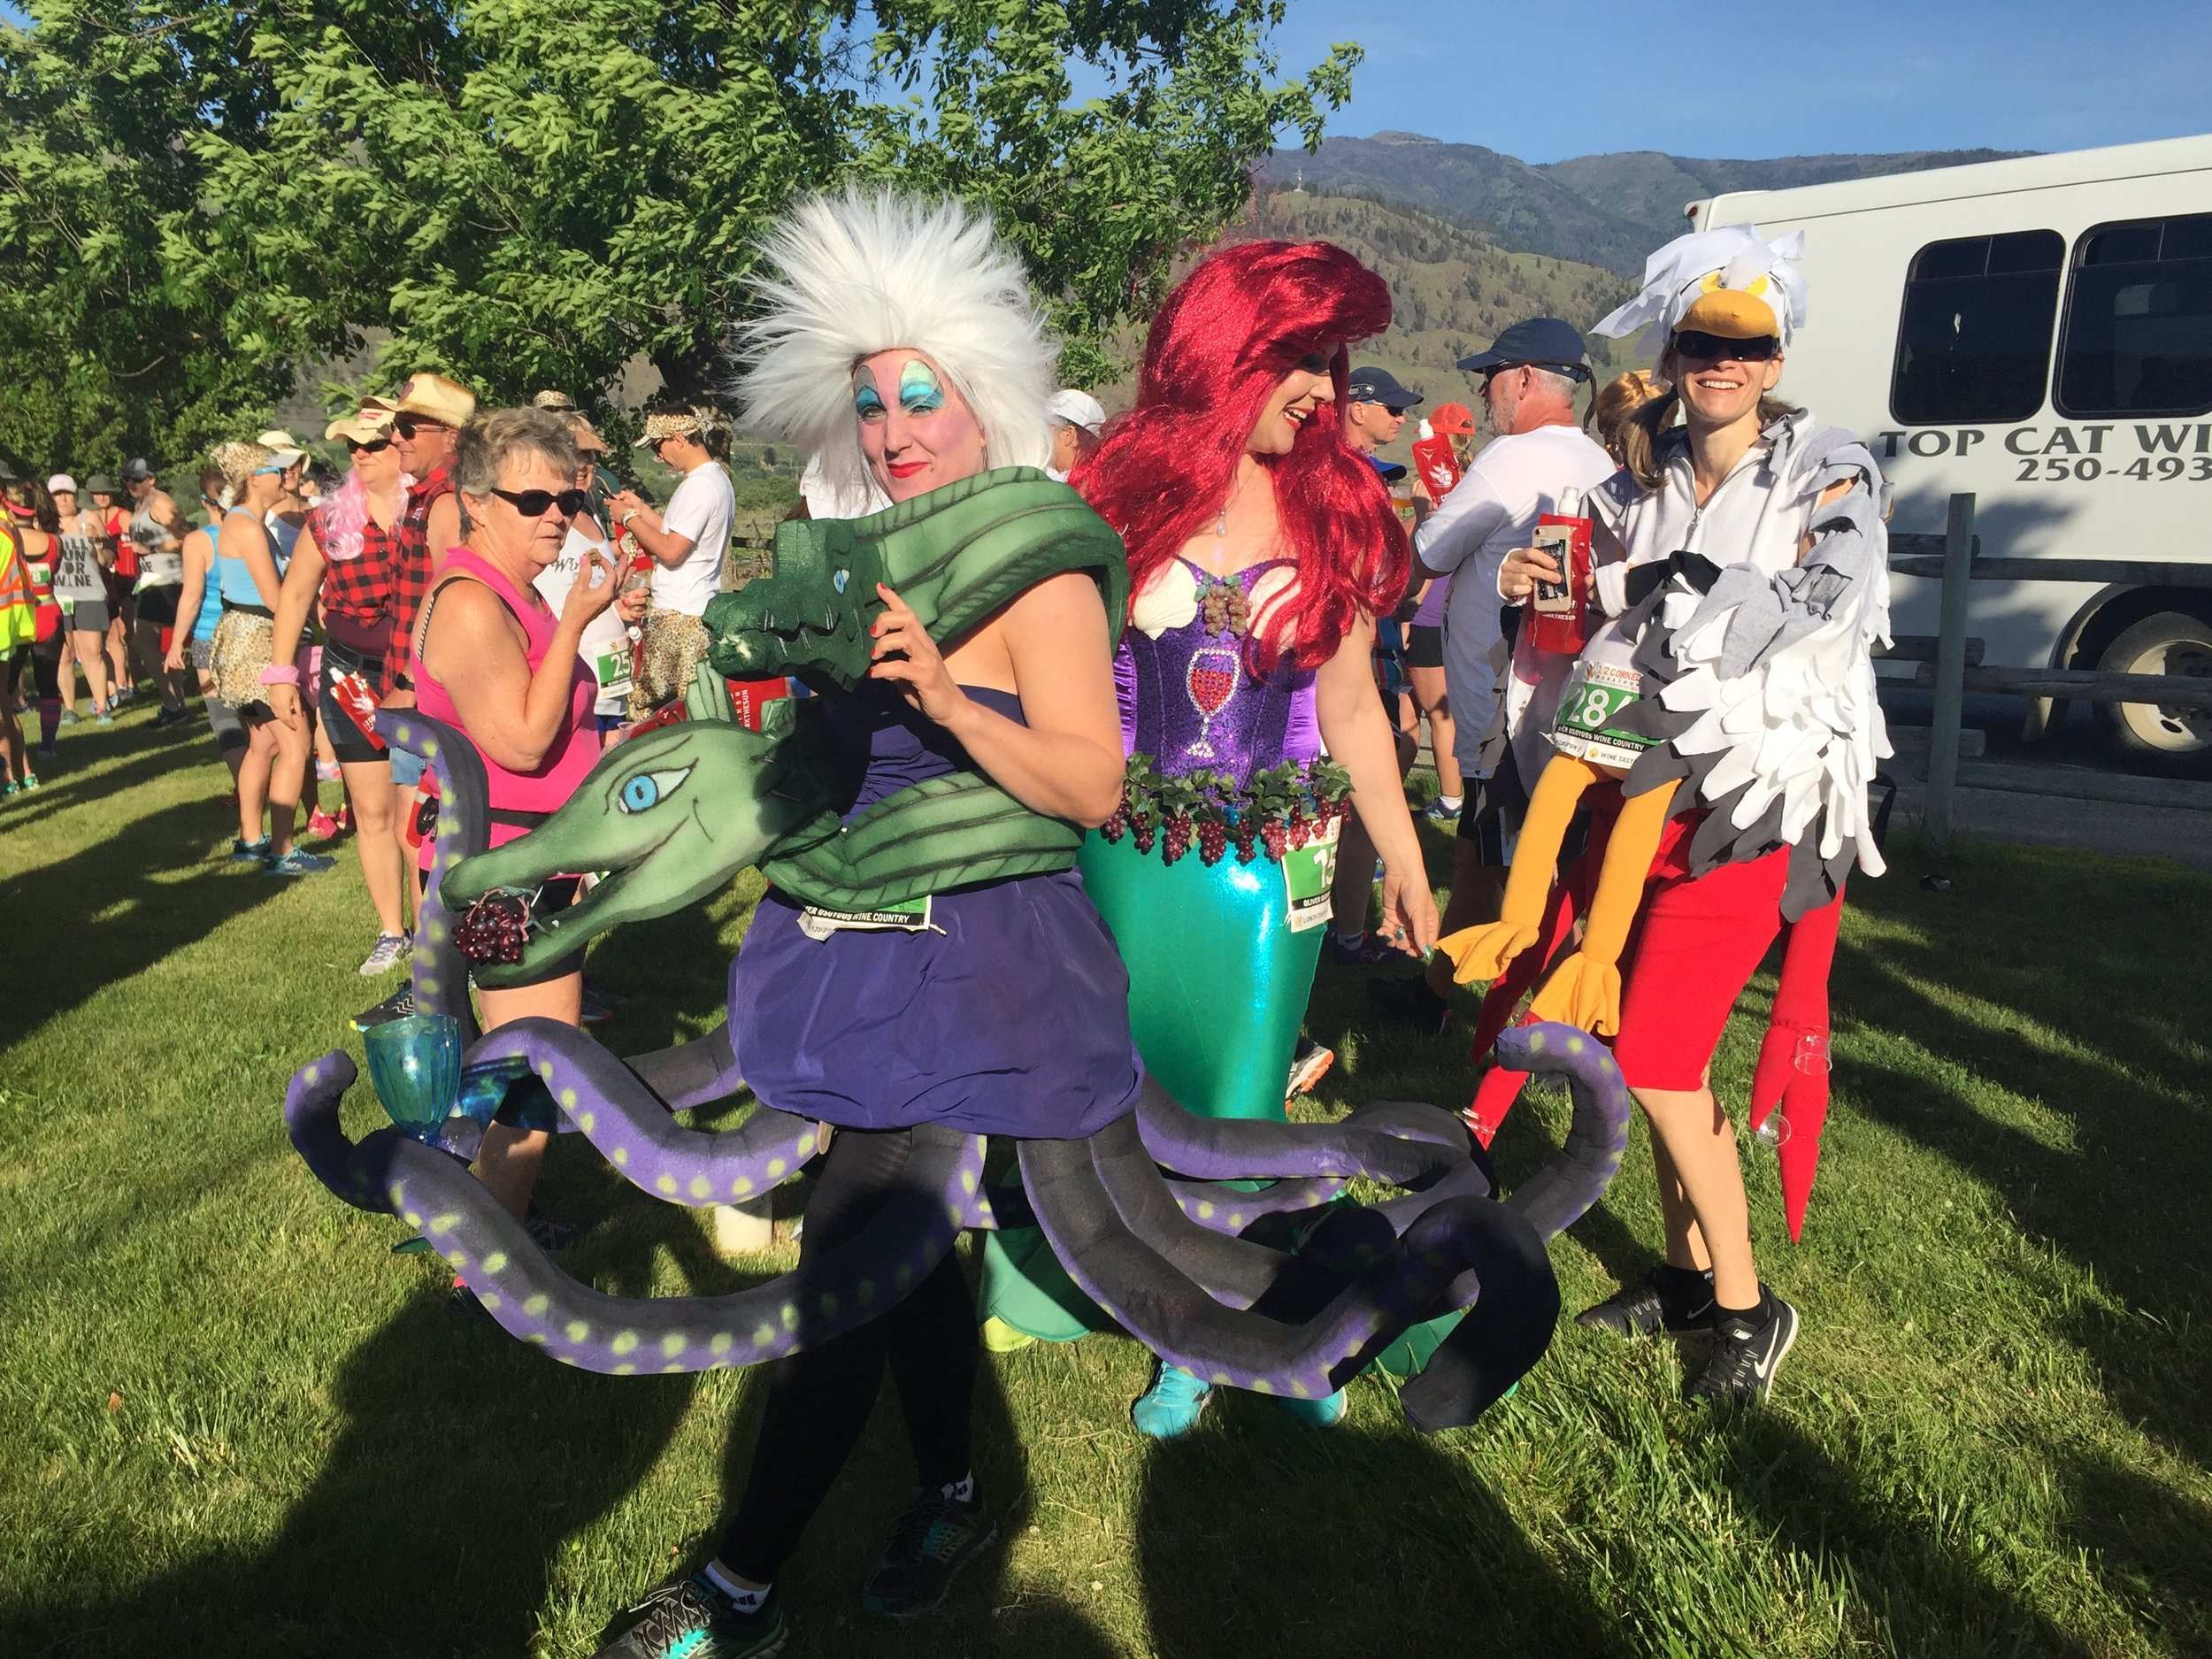 Runners, in full costume, gather at the Start Line to embark on the annual Half Corked Marathon held in British Columbia's Oliver Osoyoos Wine Country